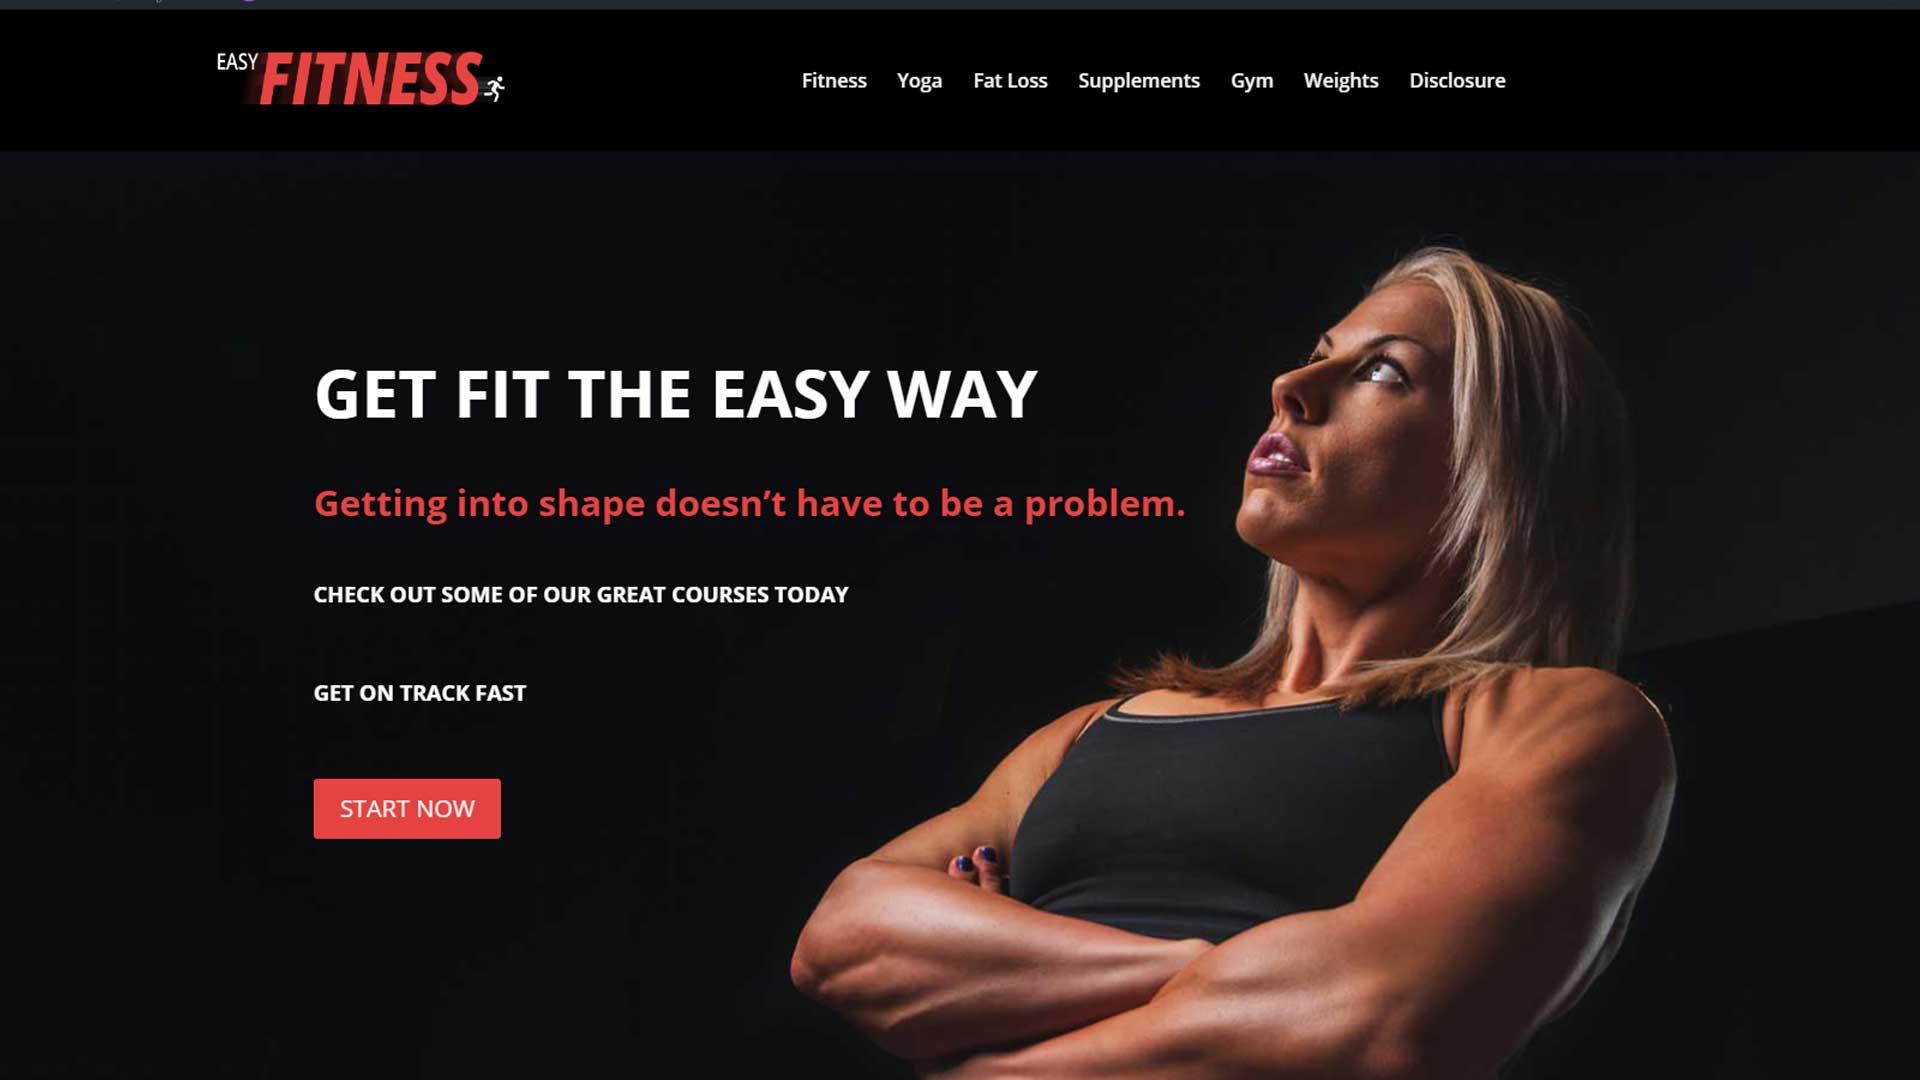 Easy Get Fit – All Courses Discounted to $10 for 3 Days